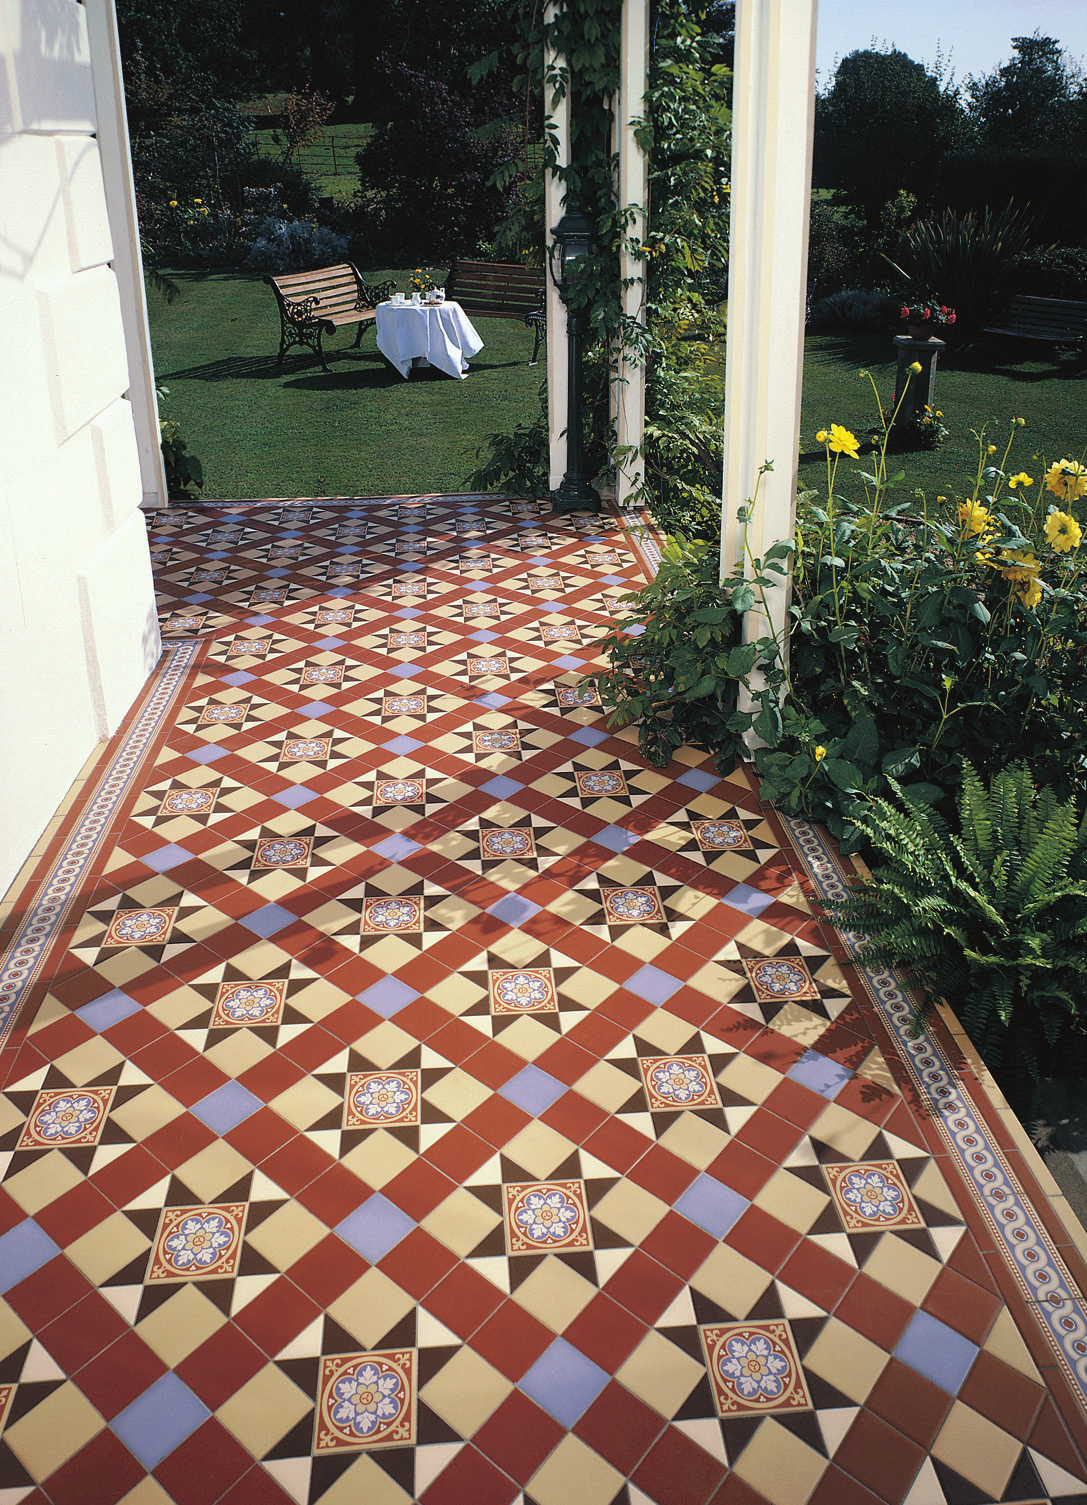 Victorian Floor Tiles Blenheim Pattern In Blue Red Buff Brown And White Incorporating Livingstone Decorated Tiles Porch Tile Victorian Tiles Garden Tiles